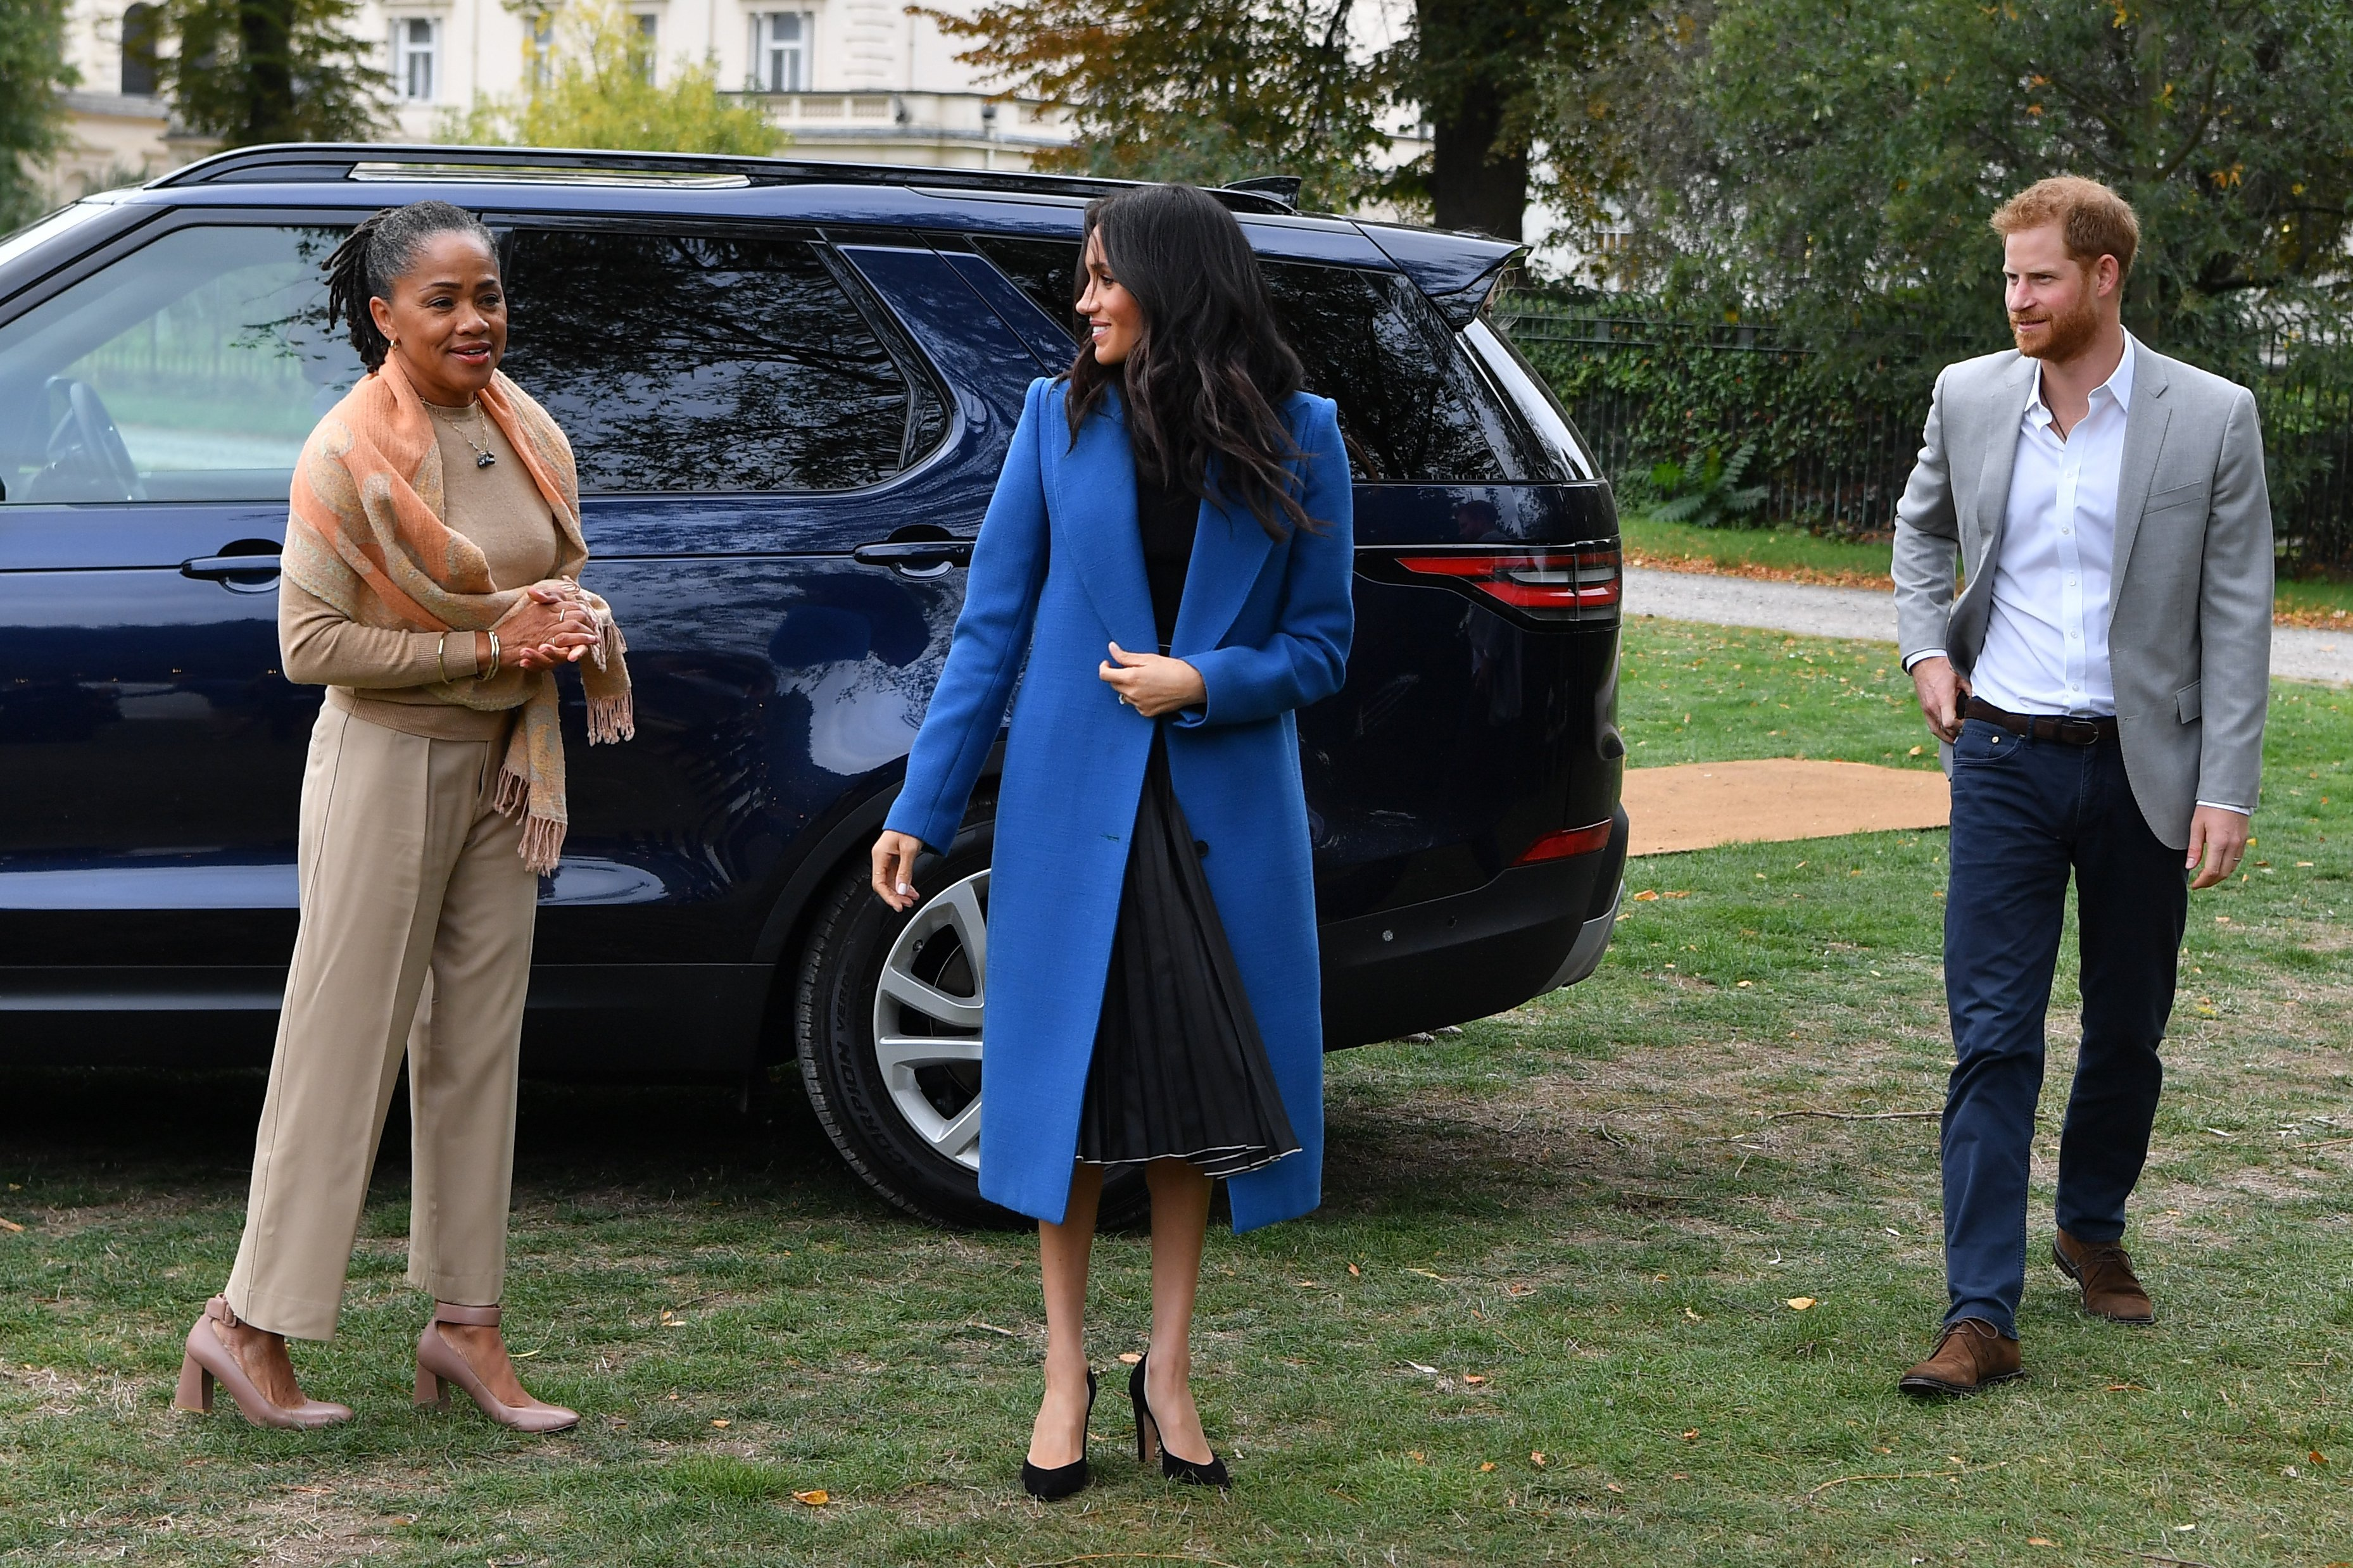 Doria Ragland, Meghan Markle and Prince Harry at Kensington Palace on September 20, 2018 in London, England. | Photo: Getty Images